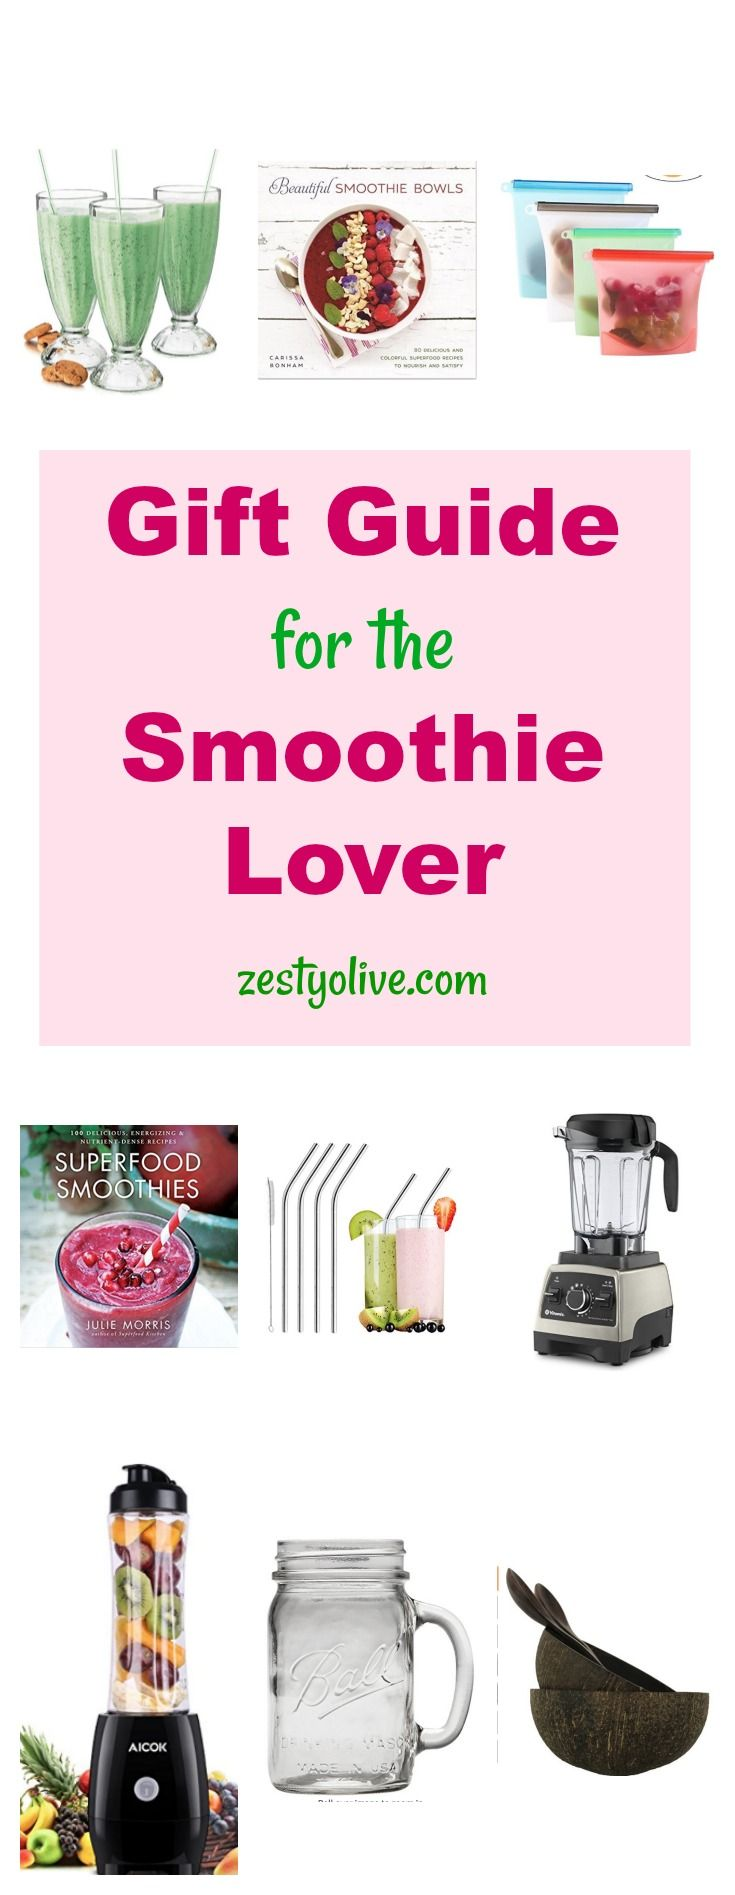 This Gift Guide for Smoothie Lovers will help you choose the perfect item for those in your life who love blending and crafting their protein shakes, smoothies and smoothie bowls. #recipes #smoothies #smoothierecipes #proteinshakes #blenders #giftguides #amoothielovers #gifts #cooking #kitchenappliances